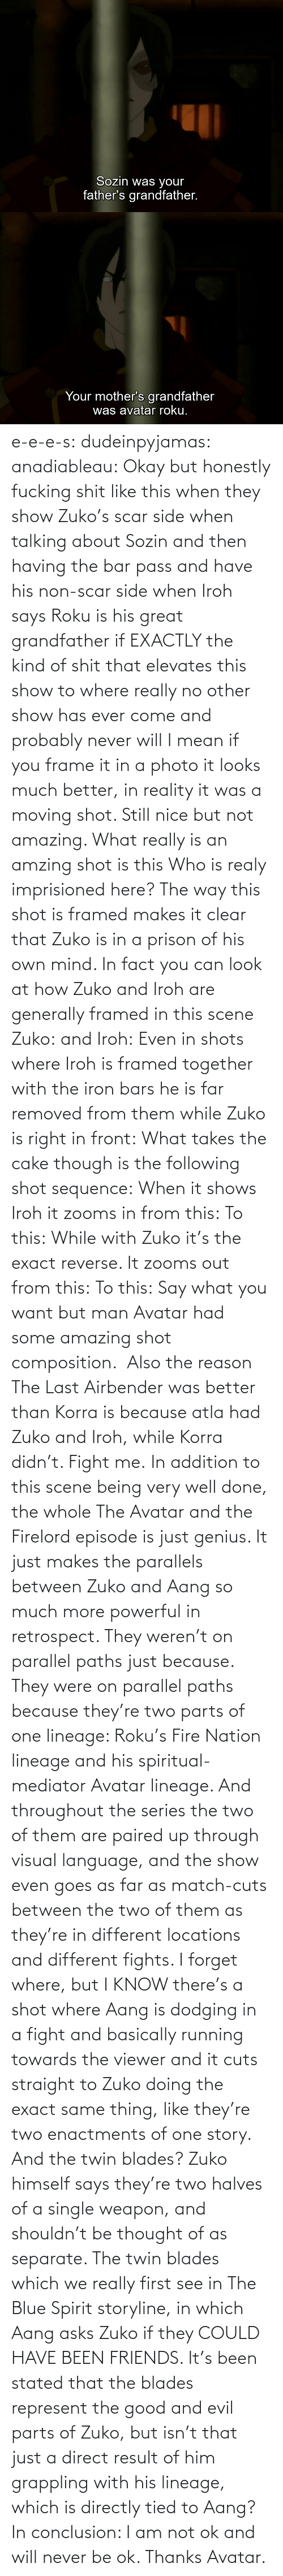 Nice: e-e-e-s: dudeinpyjamas:   anadiableau: Okay but honestly fucking shit like this when they show Zuko's scar side when talking about Sozin and then having the bar pass and have his non-scar side when Iroh says Roku is his great grandfather if EXACTLY the kind of shit that elevates this show to where really no other show has ever come and probably never will I mean if you frame it in a photo it looks much better, in reality it was a moving shot. Still nice but not amazing. What really is an amzing shot is this Who is realy imprisioned here? The way this shot is framed makes it clear that Zuko is in a prison of his own mind. In fact you can look at how Zuko and Iroh are generally framed in this scene Zuko: and Iroh: Even in shots where Iroh is framed together with the iron bars he is far removed from them while Zuko is right in front:  What takes the cake though is the following shot sequence: When it shows Iroh it zooms in from this: To this: While with Zuko it's the exact reverse. It zooms out from this: To this: Say what you want but man Avatar had some amazing shot composition.   Also the reason The Last Airbender was better than Korra is because atla had Zuko and Iroh, while Korra didn't. Fight me.    In addition to this scene being very well done, the whole The Avatar and the Firelord episode is just genius.  It just makes the parallels between Zuko and Aang so much more powerful in retrospect.  They weren't on parallel paths just because.  They were on parallel paths because they're two parts of one lineage: Roku's Fire Nation lineage and his spiritual-mediator Avatar lineage.  And throughout the series the two of them are paired up through visual language, and the show even goes as far as match-cuts between the two of them as they're in different locations and different fights.  I forget where, but I KNOW there's a shot where Aang is dodging in a fight and basically running towards the viewer and it cuts straight to Zuko doing the exact same thing, like they're two enactments of one story.   And the twin blades?  Zuko himself says they're two halves of a single weapon, and shouldn't be thought of as separate.  The twin blades which we really first see in The Blue Spirit storyline, in which Aang asks Zuko if they COULD HAVE BEEN FRIENDS.  It's been stated that the blades represent the good and evil parts of Zuko, but isn't that just a direct result of him grappling with his lineage, which is directly tied to Aang? In conclusion: I am not ok and will never be ok.  Thanks Avatar.